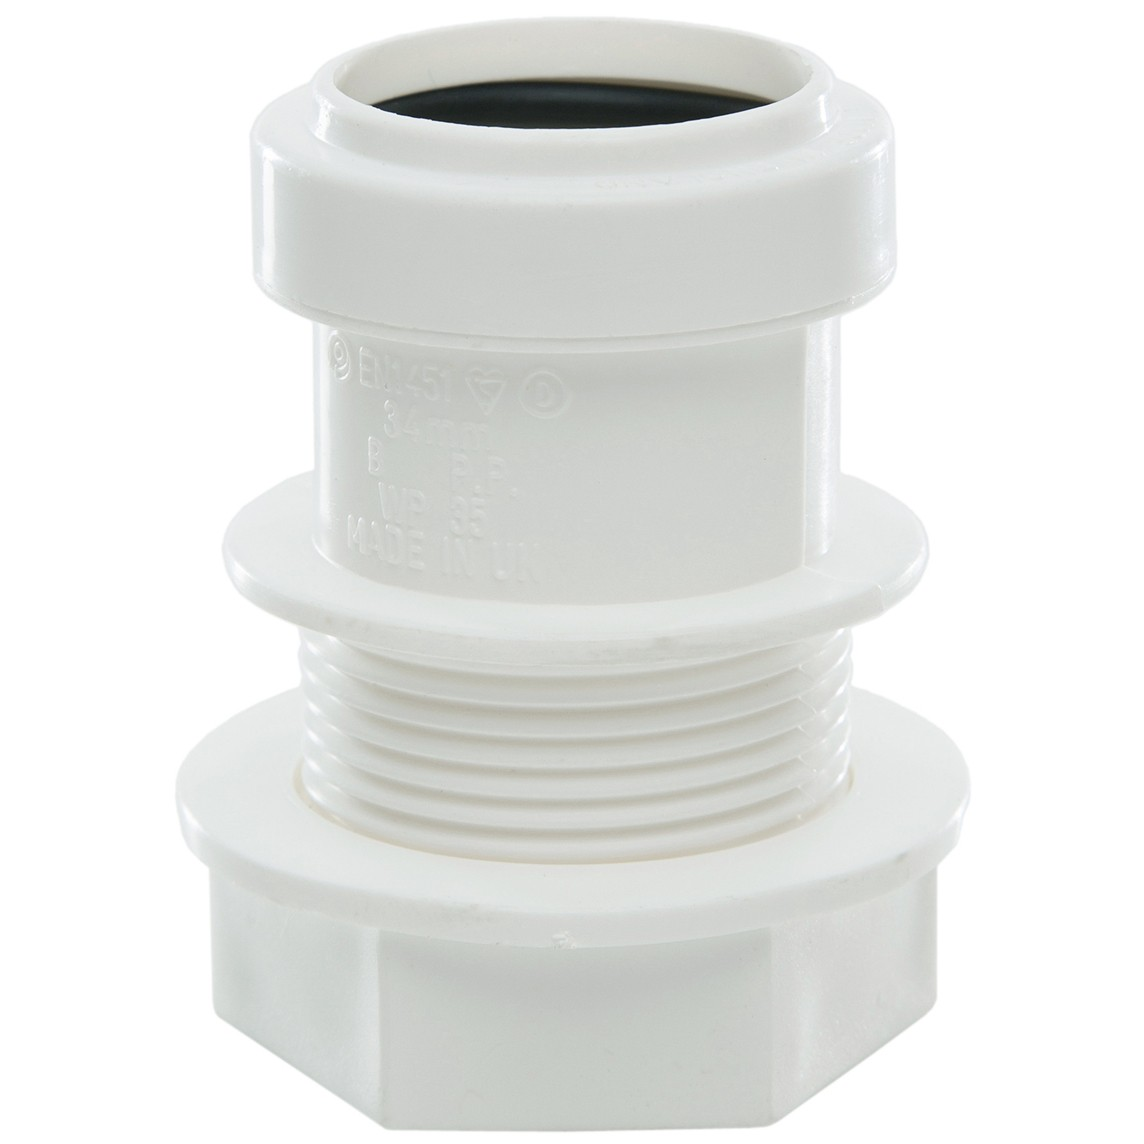 Polypipe 32mm Push Fit Waste Tank Connector - White